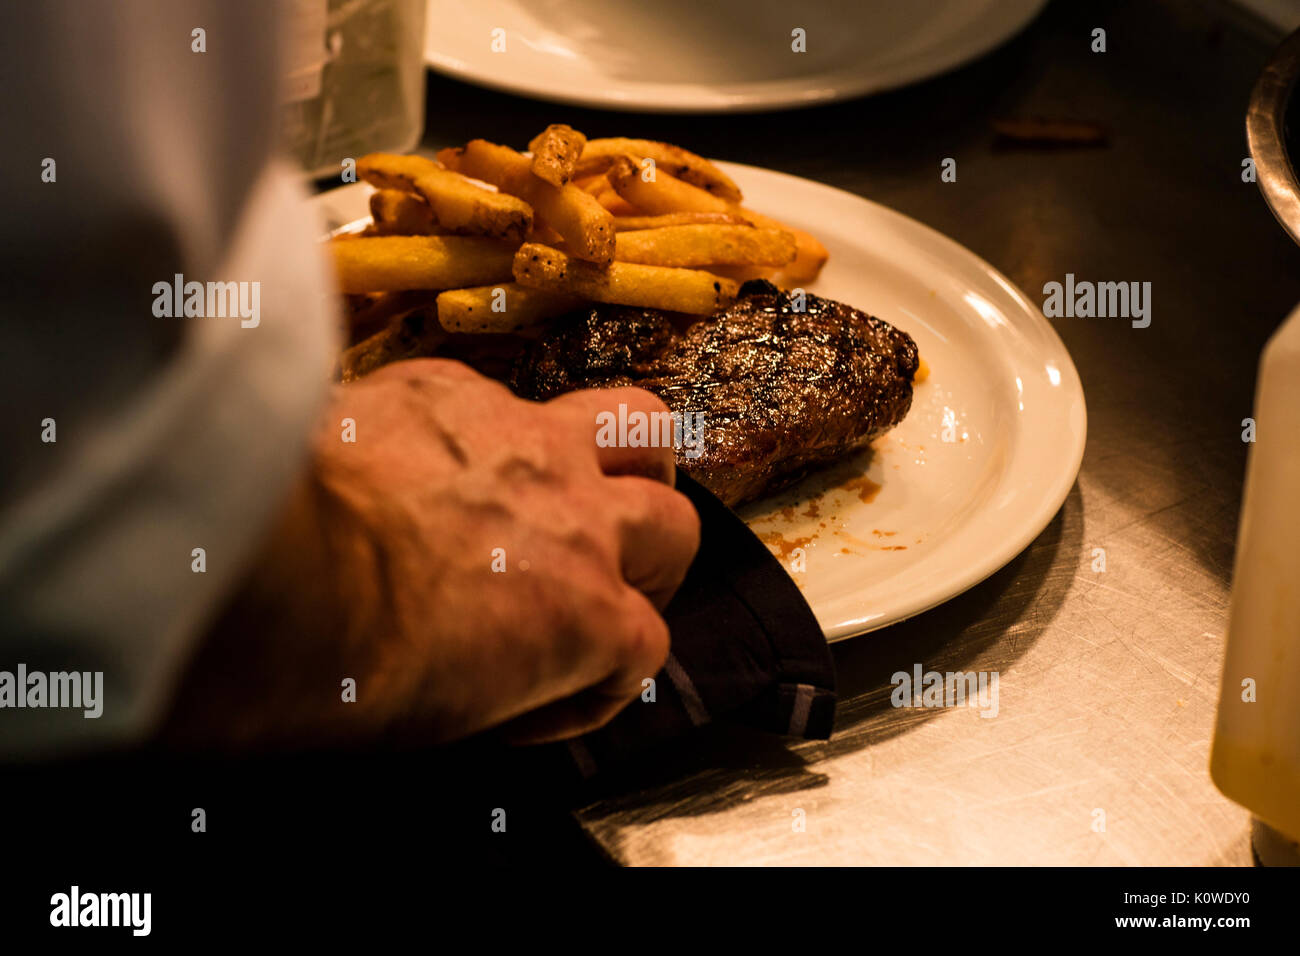 Steak and Chips Dinner at Gastropub - Stock Image